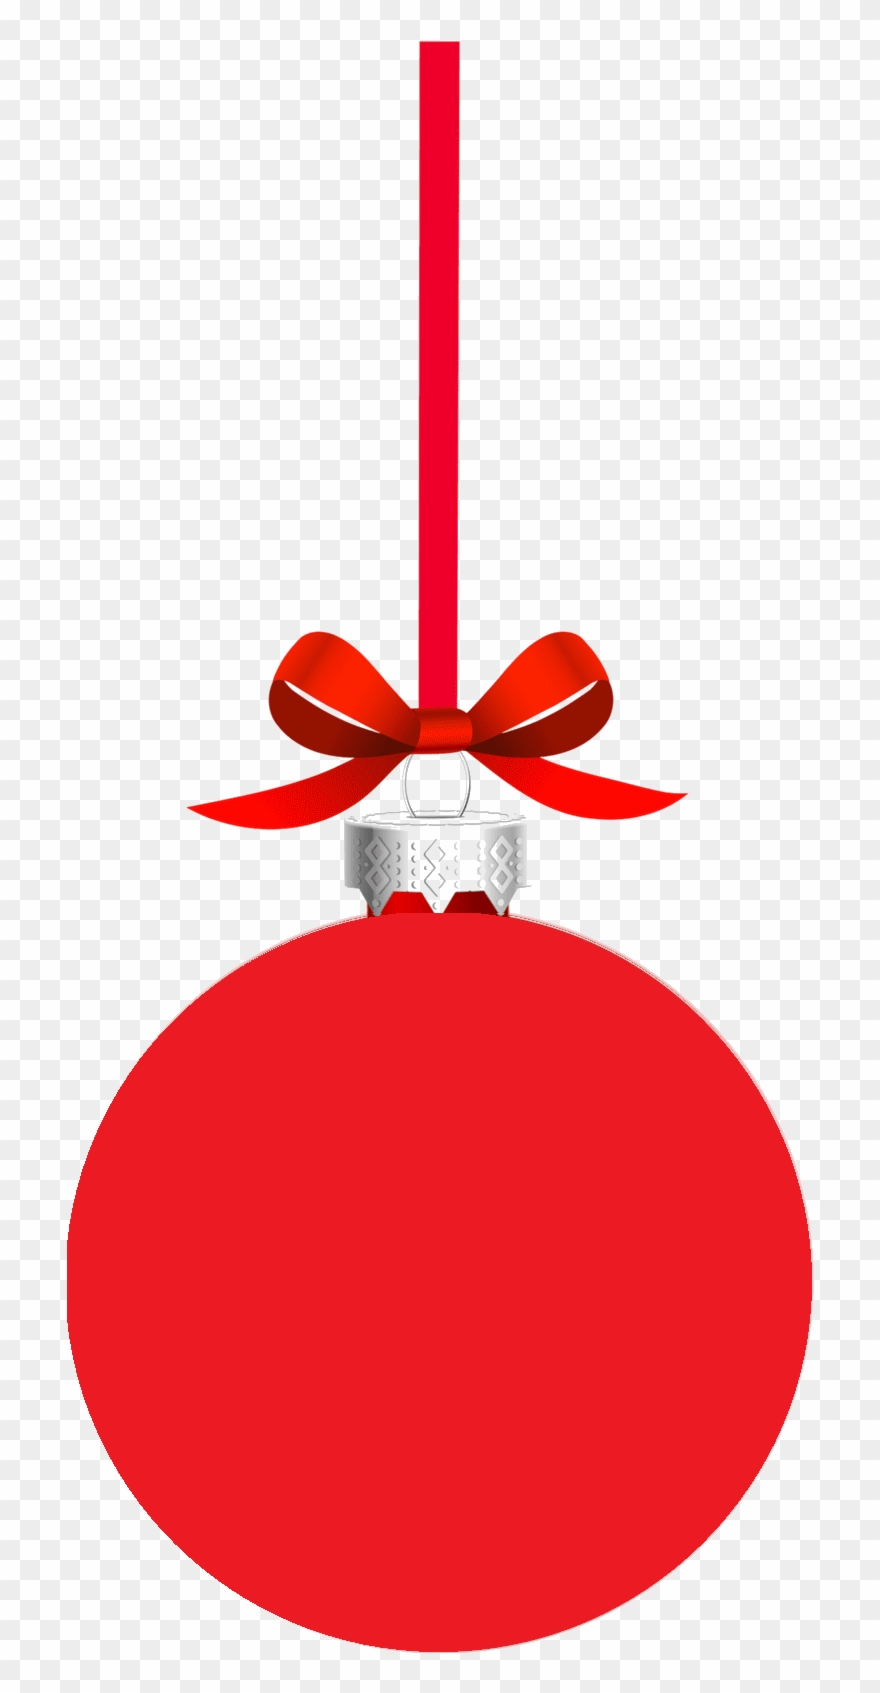 Red Christmas Ball Png , Png Download.